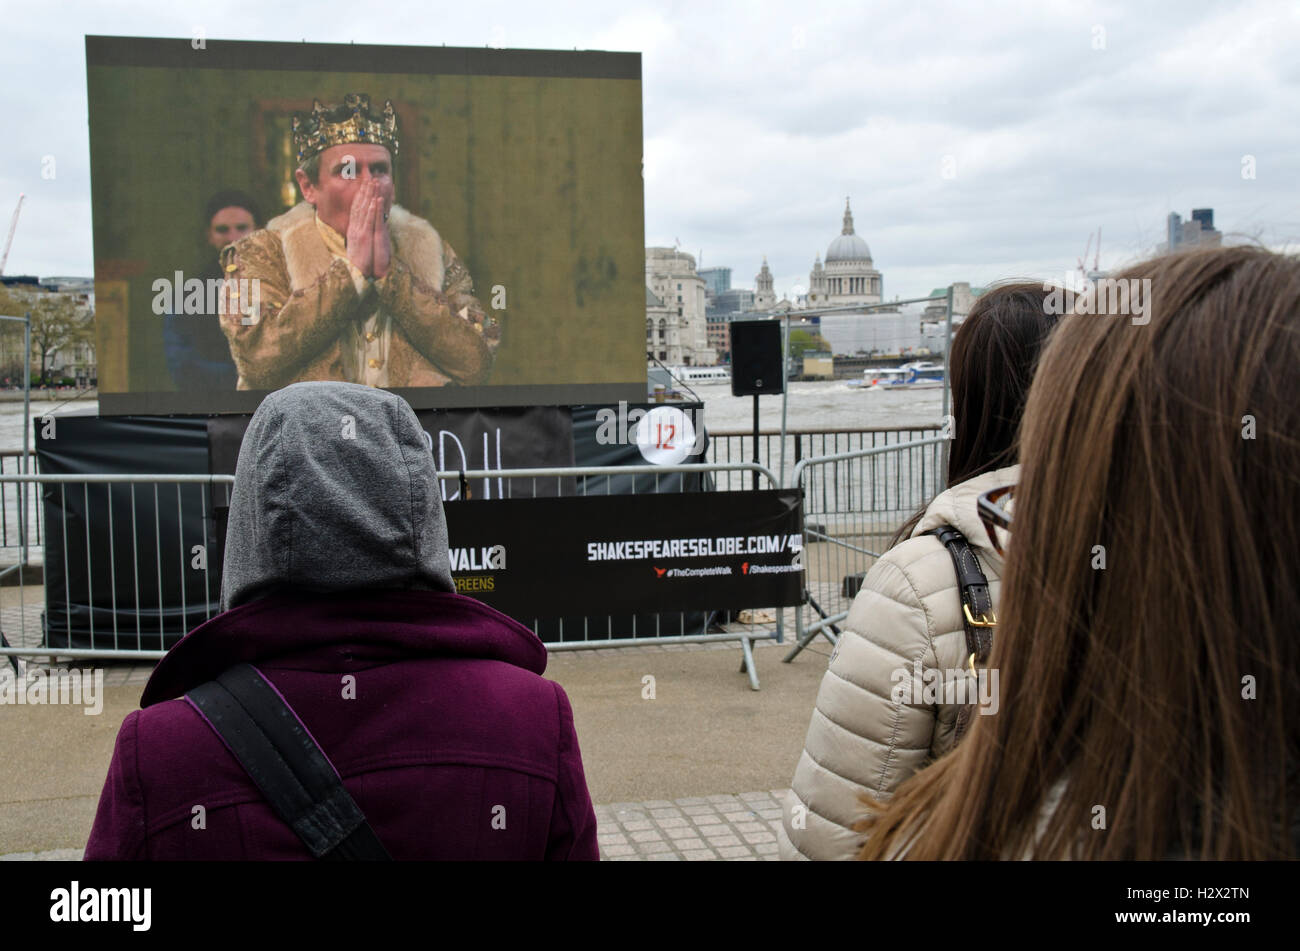 Richard II is a play by William Shakespeare / plays in open air, crowd watching in the river side - Stock Image